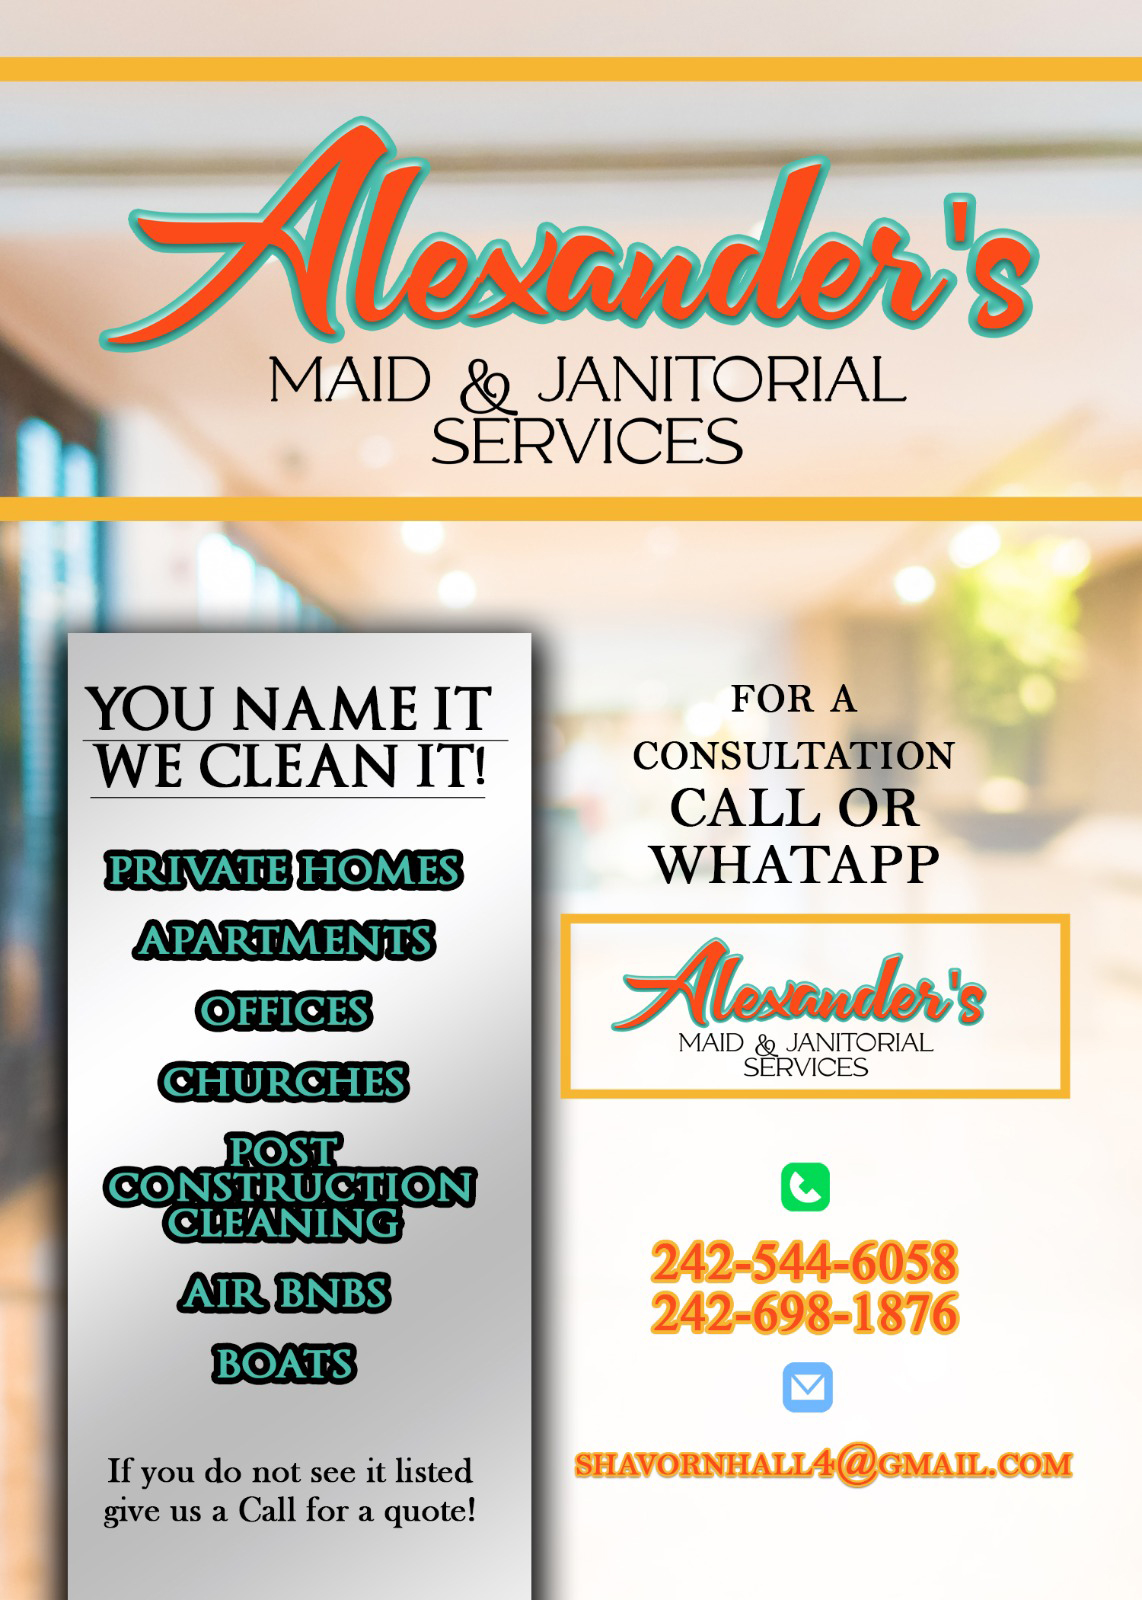 Alexander's Maid and Janitorial Services